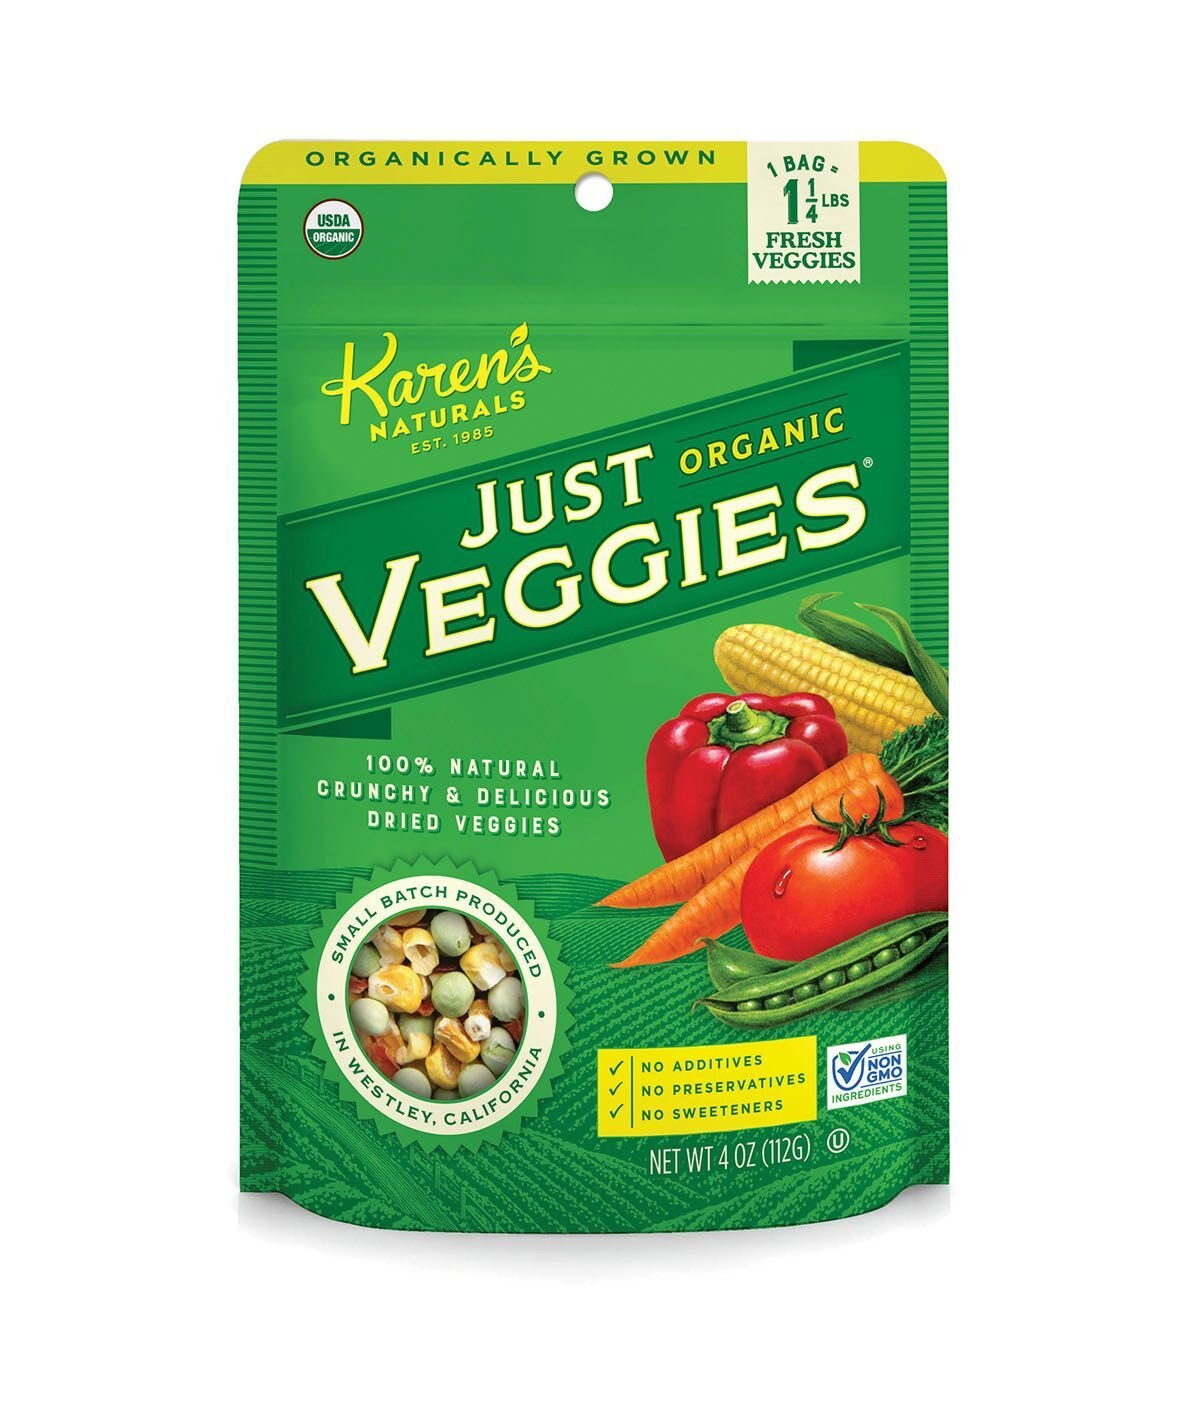 Karen's Naturals Just Tomatoes, Organic Just Veggies 4 Ounce Pouch (Pack of 4) (Packaging May Vary)